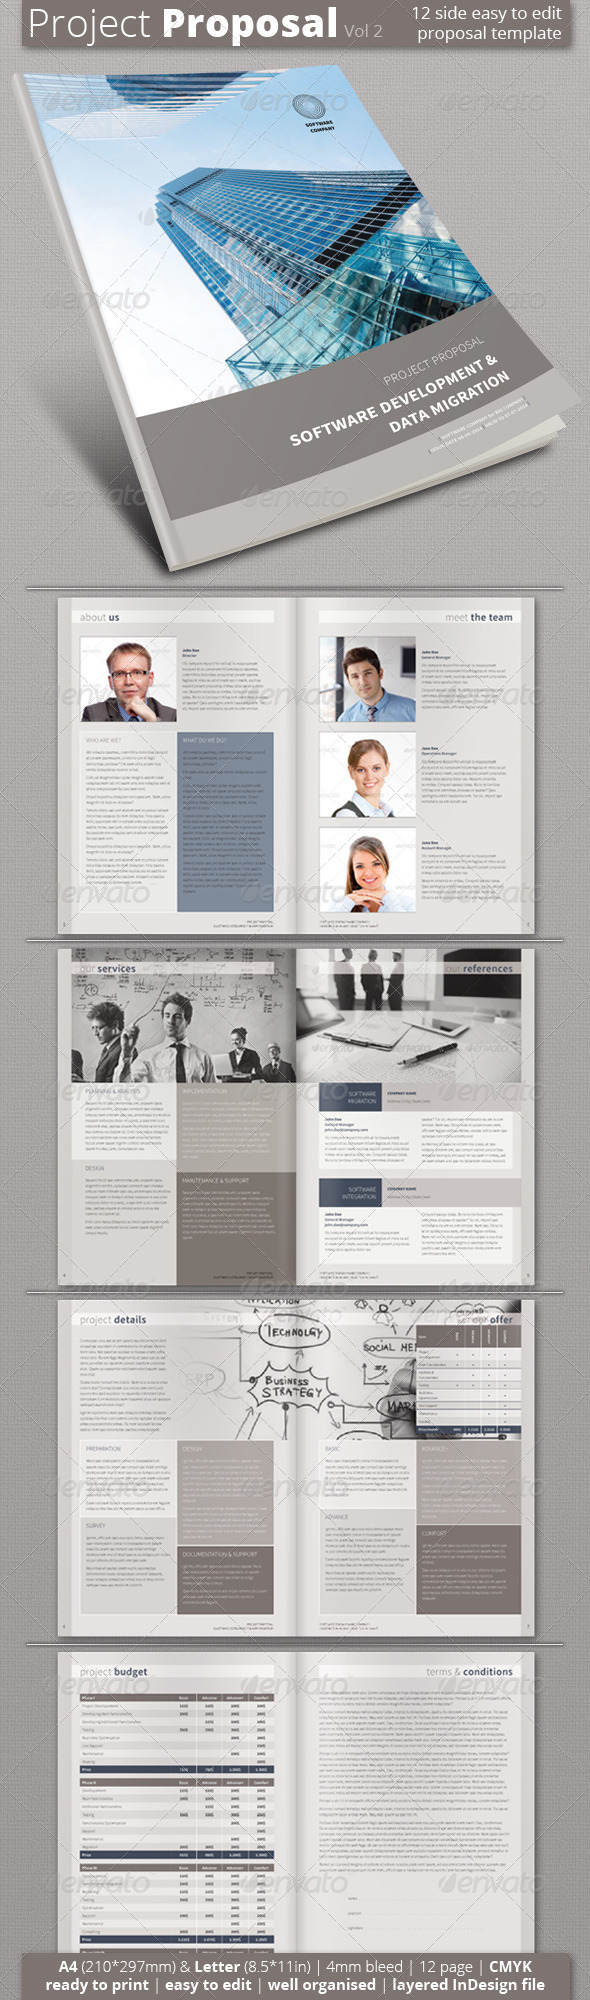 Project Proposal (Vol 2) - Proposals & Invoices Stationery